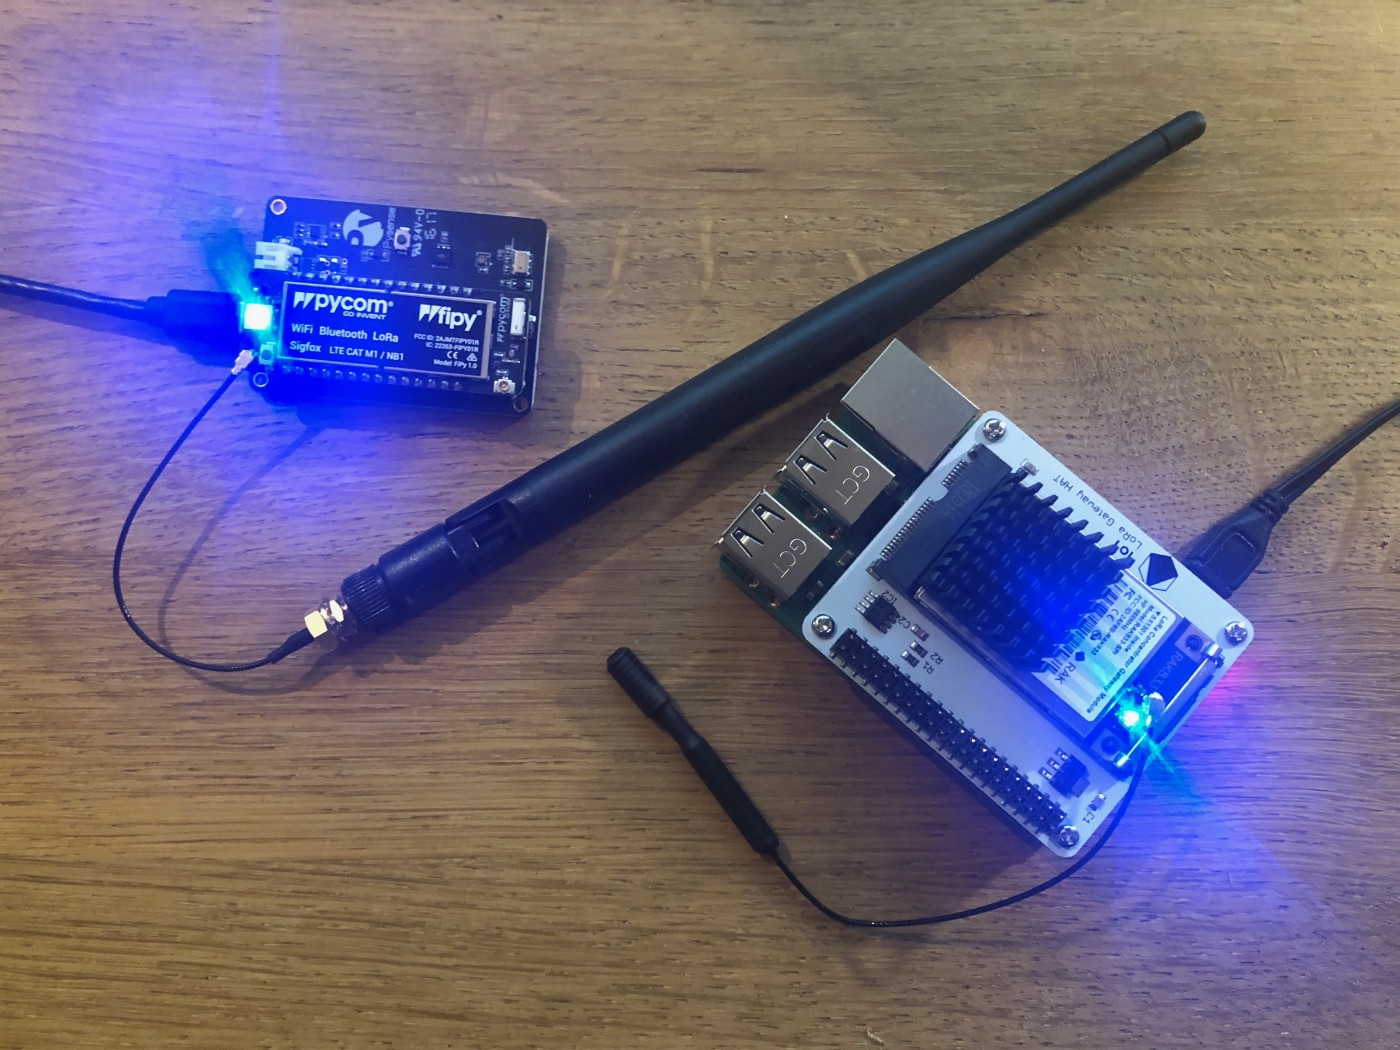 Hands-on with the New PiSupply LoRa Gateway and The Things Network